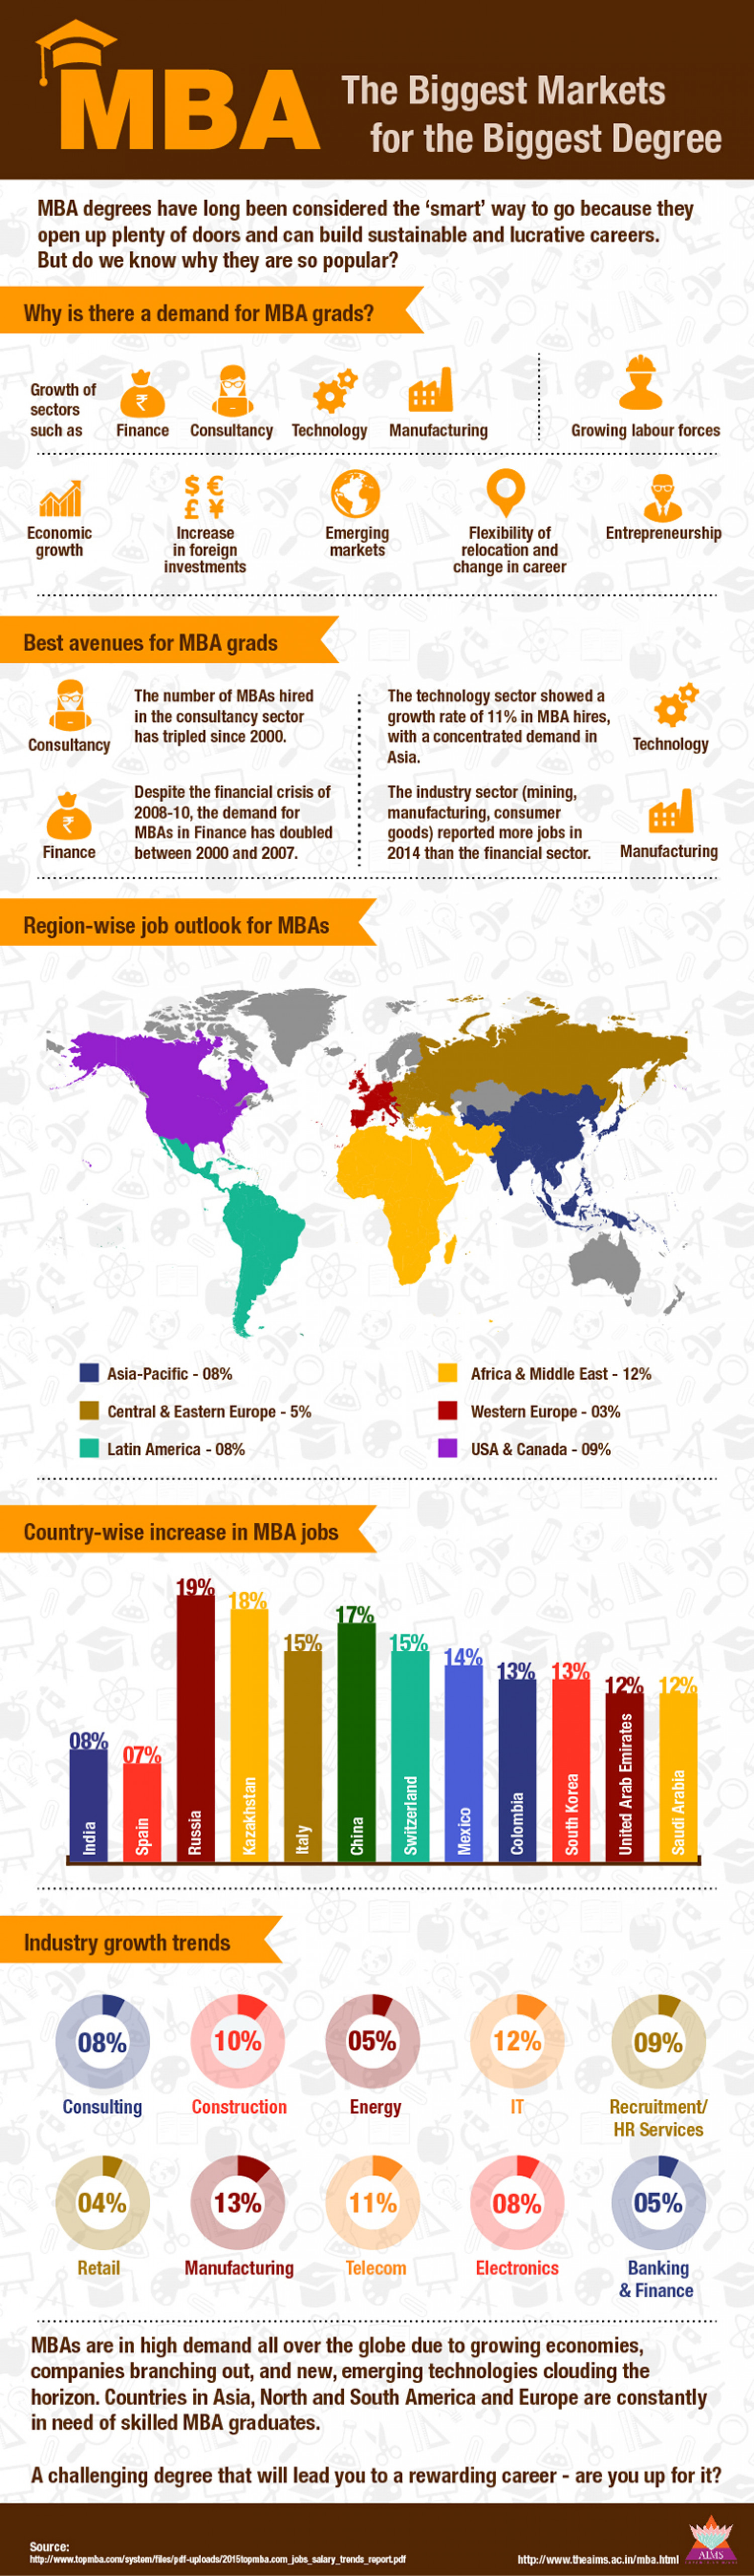 best jobs for mba graduates jobs before they started b school and mba the biggest market for the biggest mba degree infographic